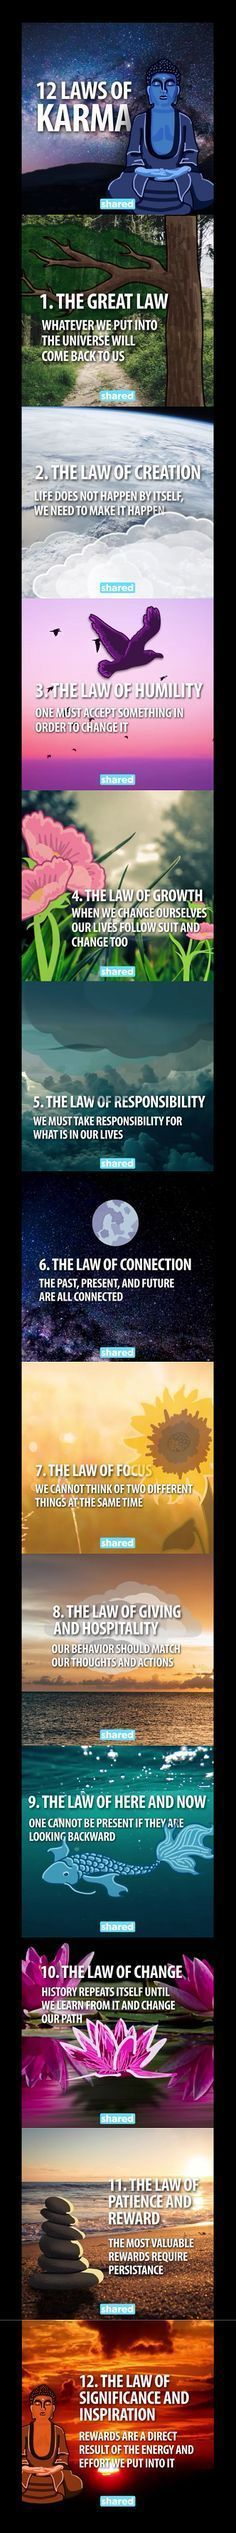 The 12 Laws of Karma http://loathought.com/smart-social-media-user/